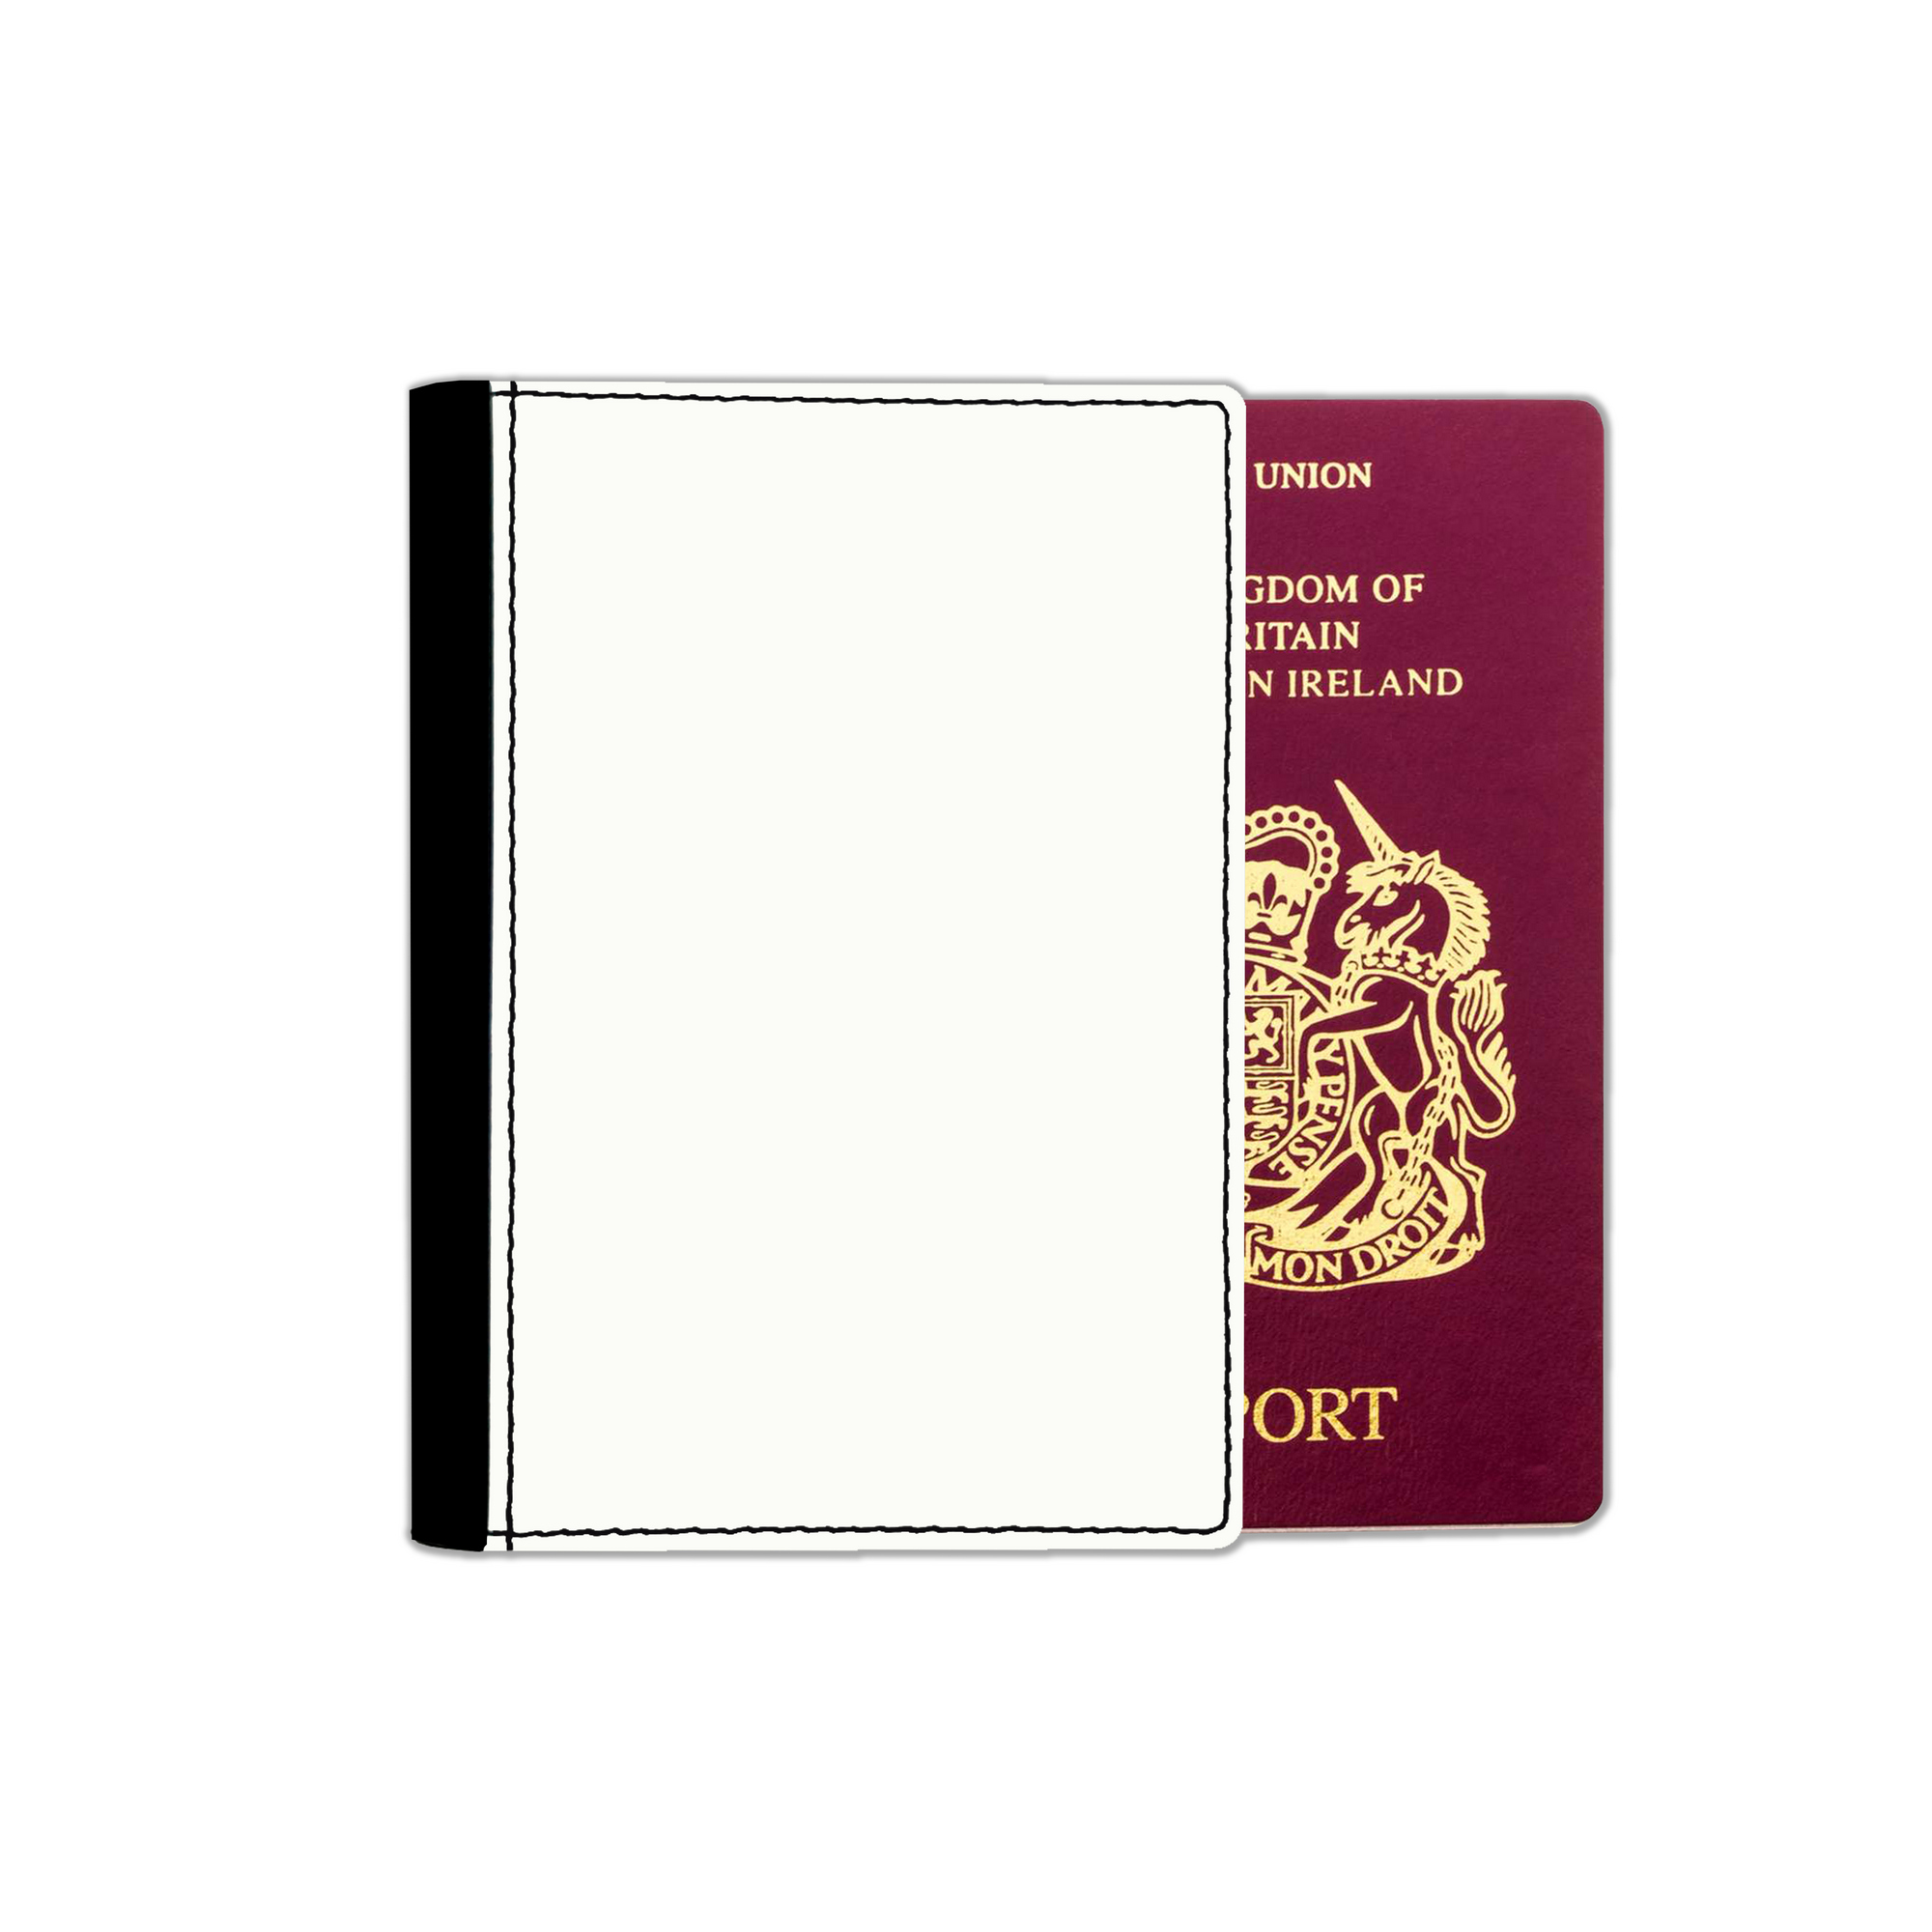 Faux leather Passport covers are a great way to keep your travel documents neat and tidy, and always ready for inspection.